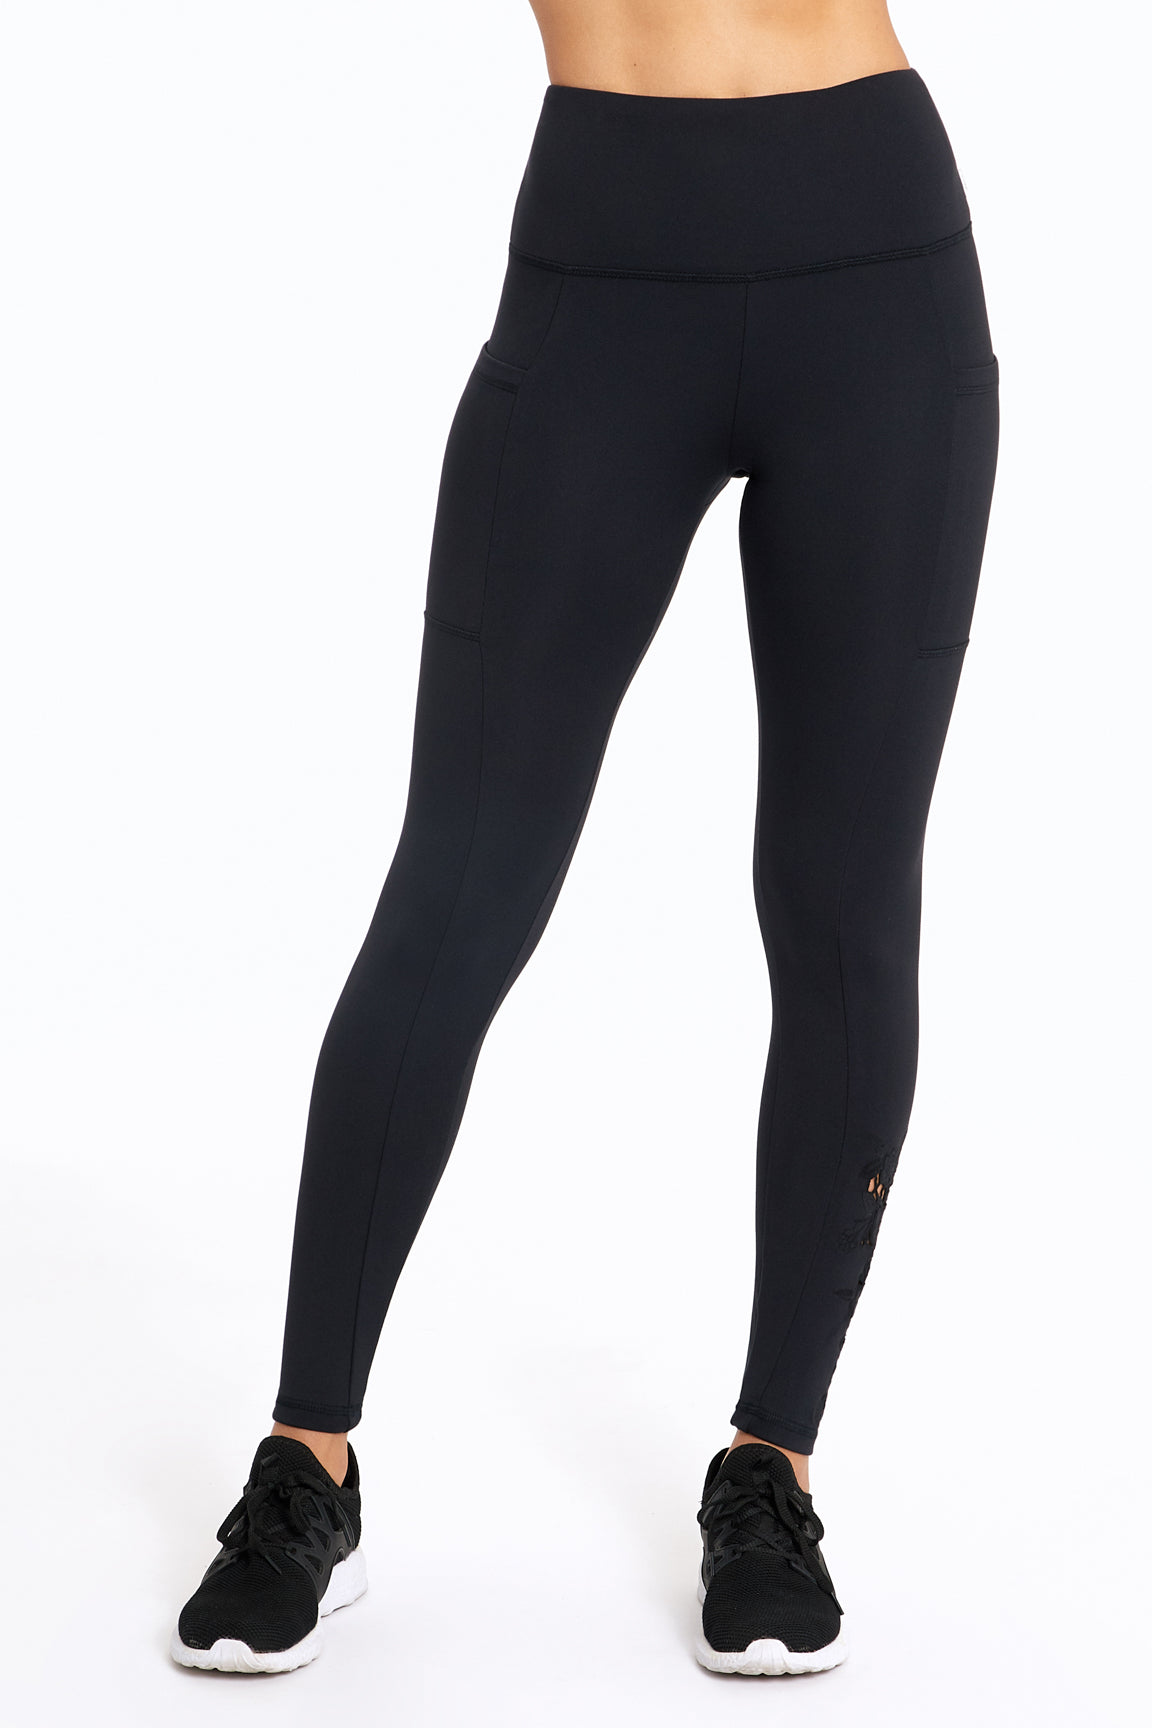 bfa4871d70d49 Evita Side Pocket Embroidered Legging. Starting at $27.99 $60.00